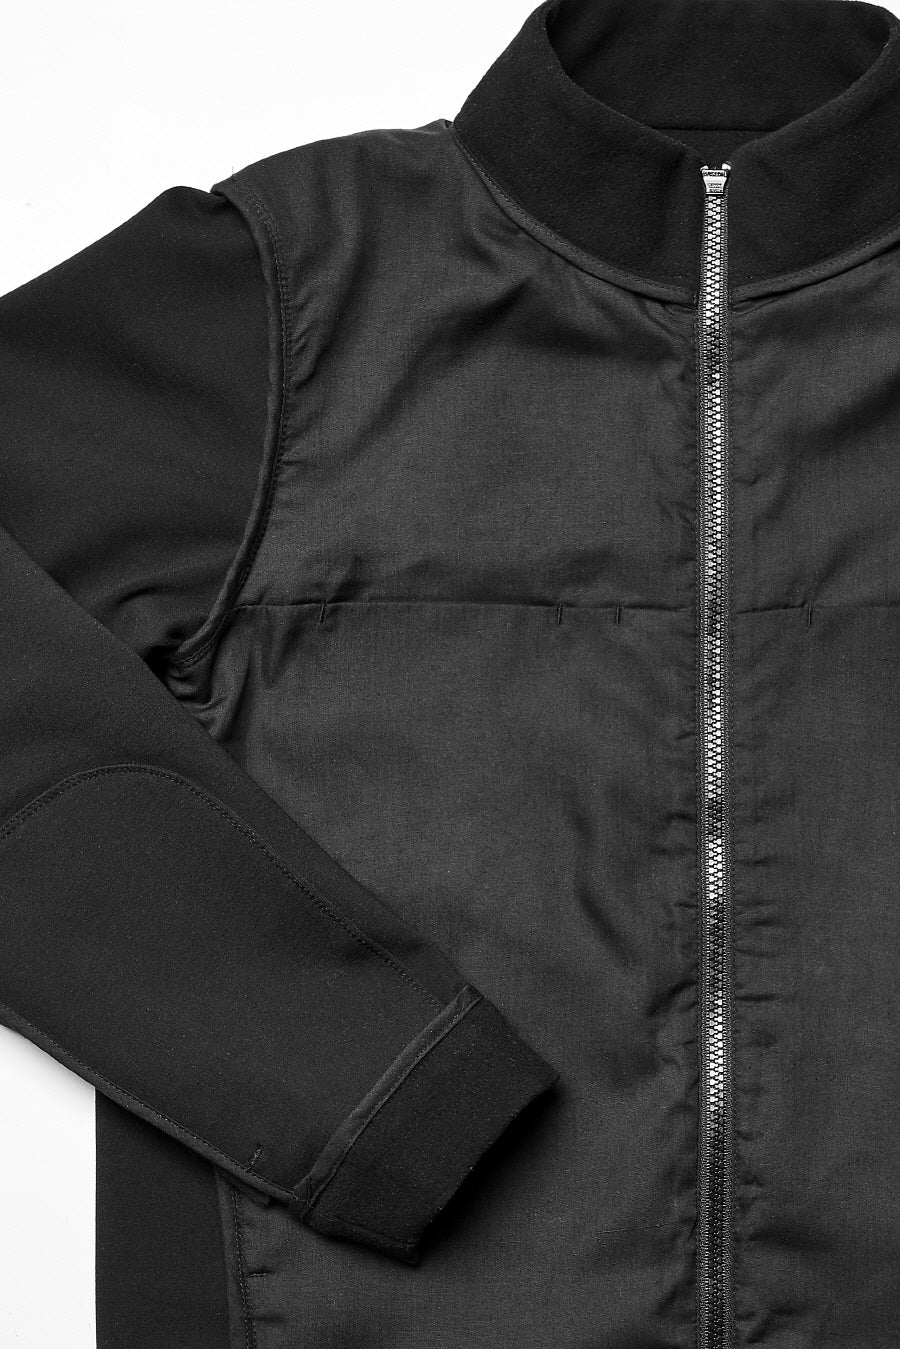 Premium Homesuit Jacket - Black